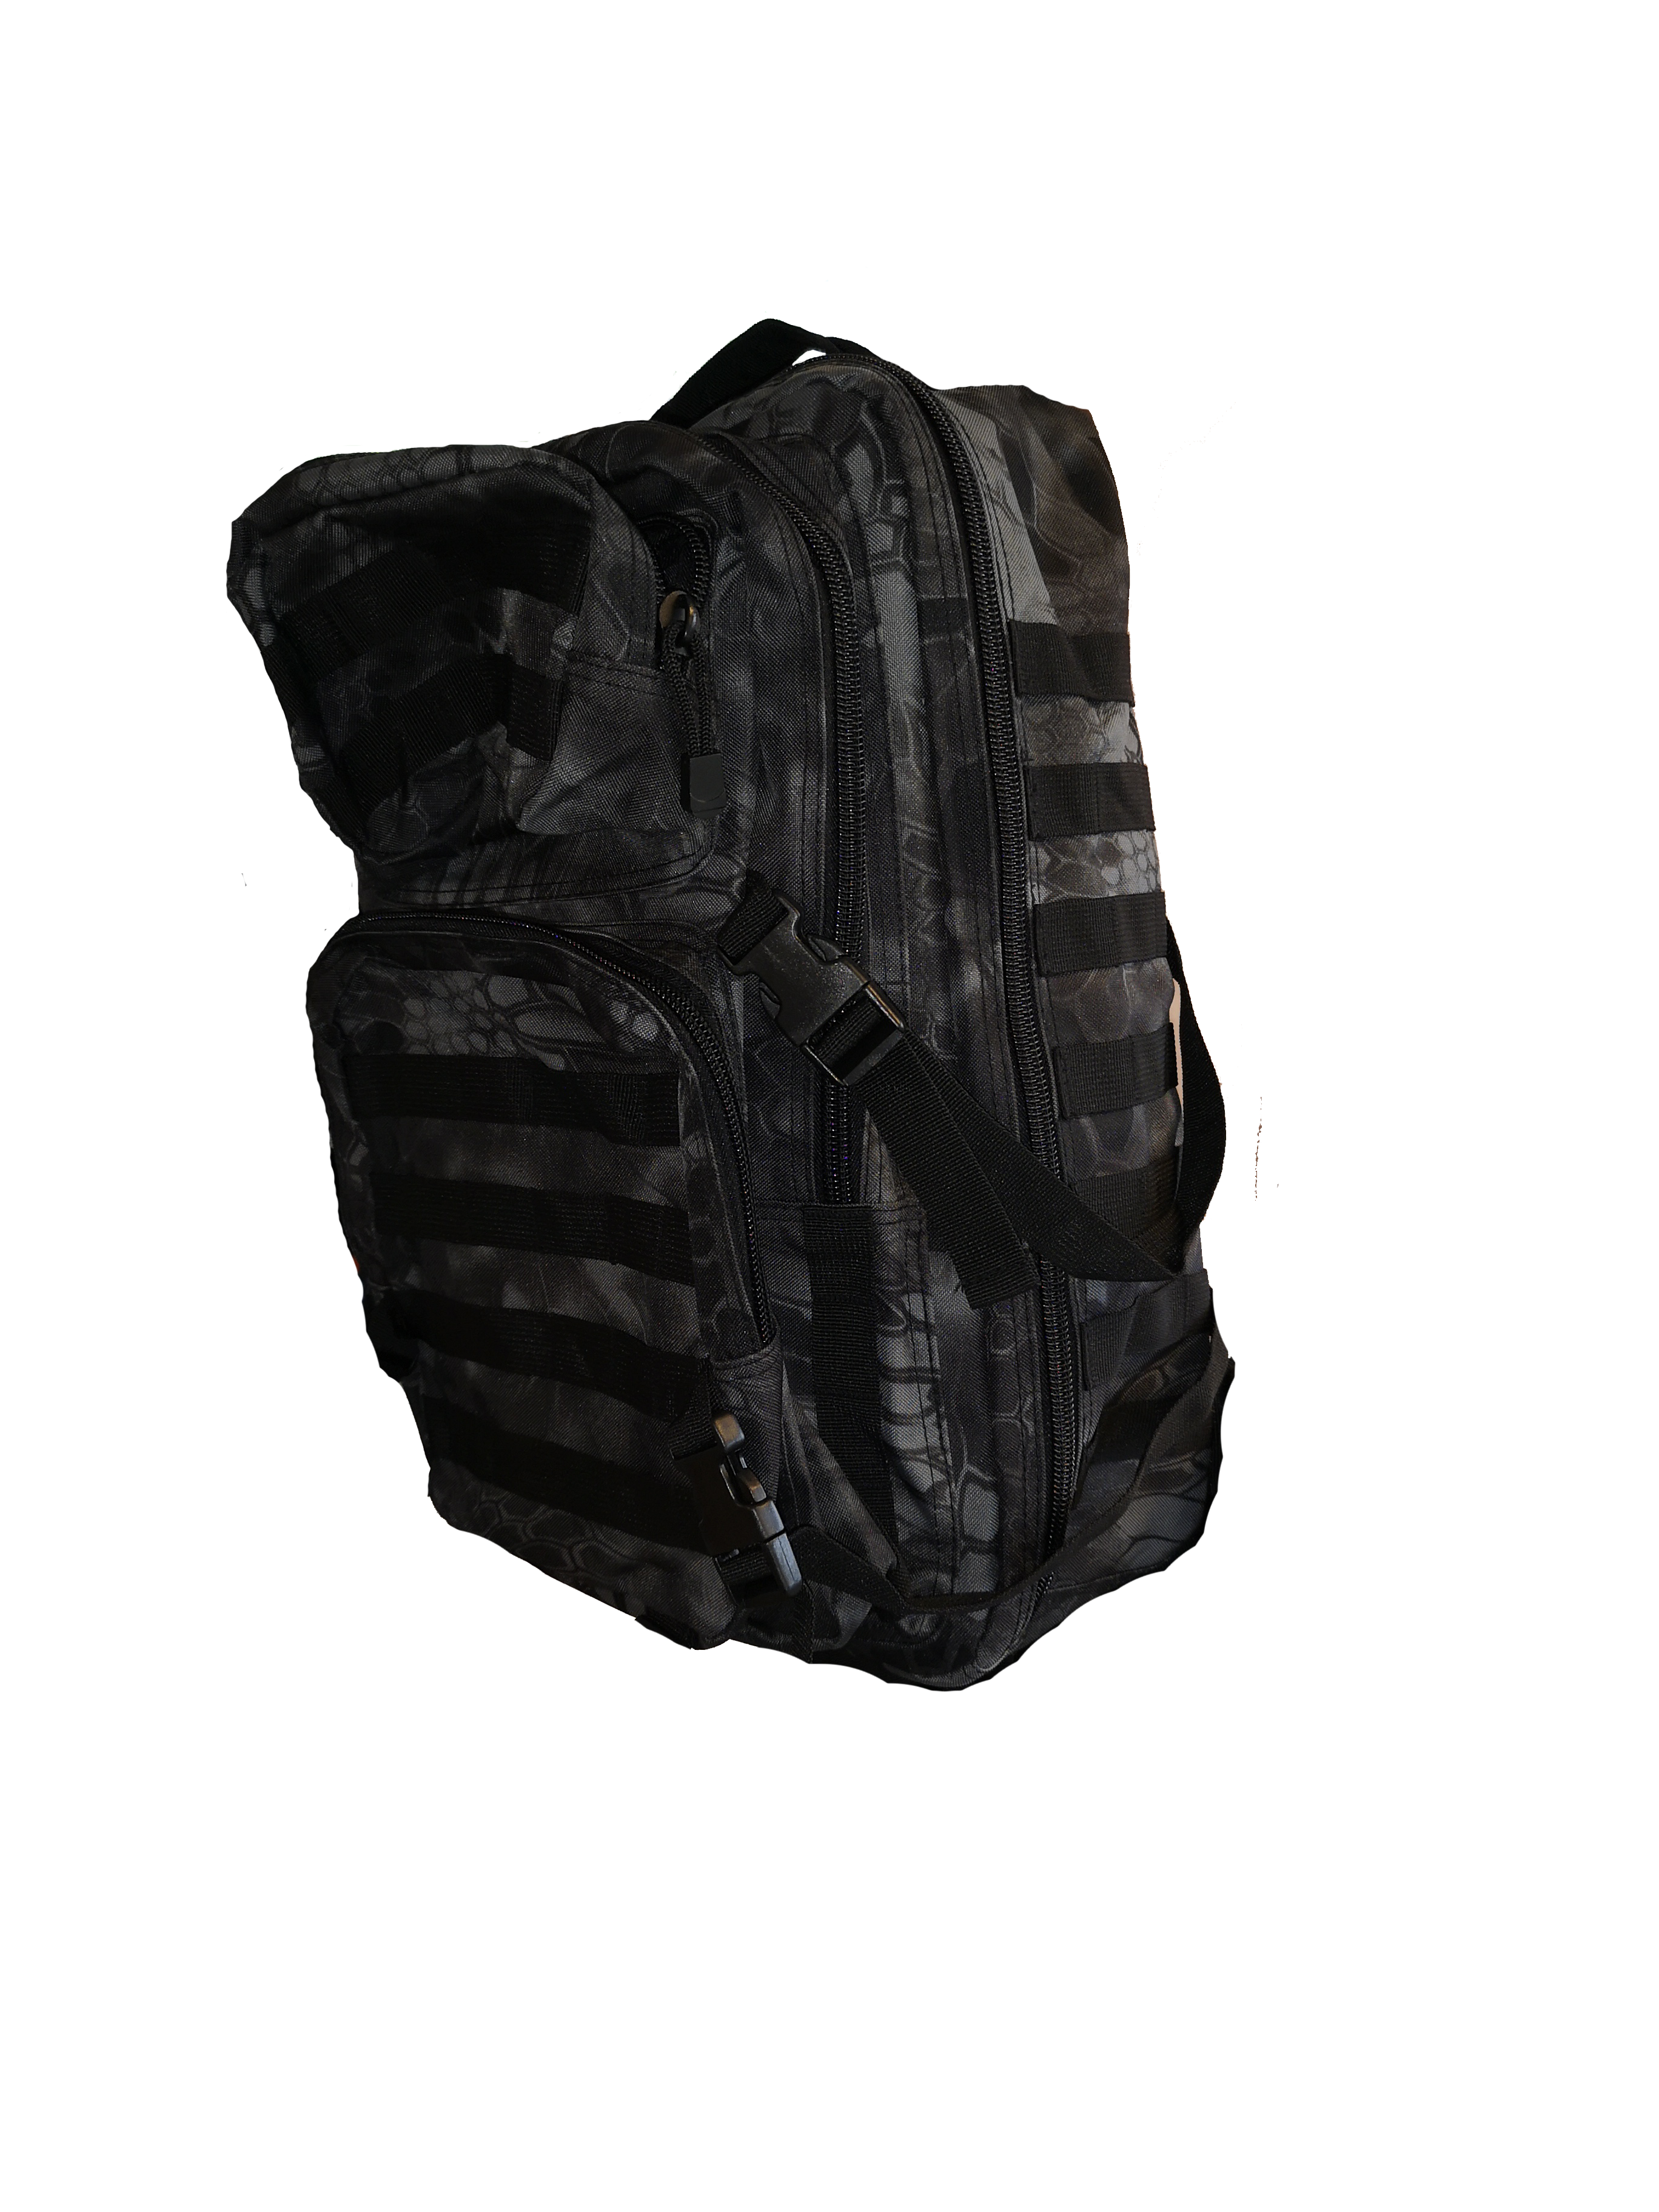 MOUNTAIN BACKPACK RYGSÆK NIGHT CAMO 45L by 101INC